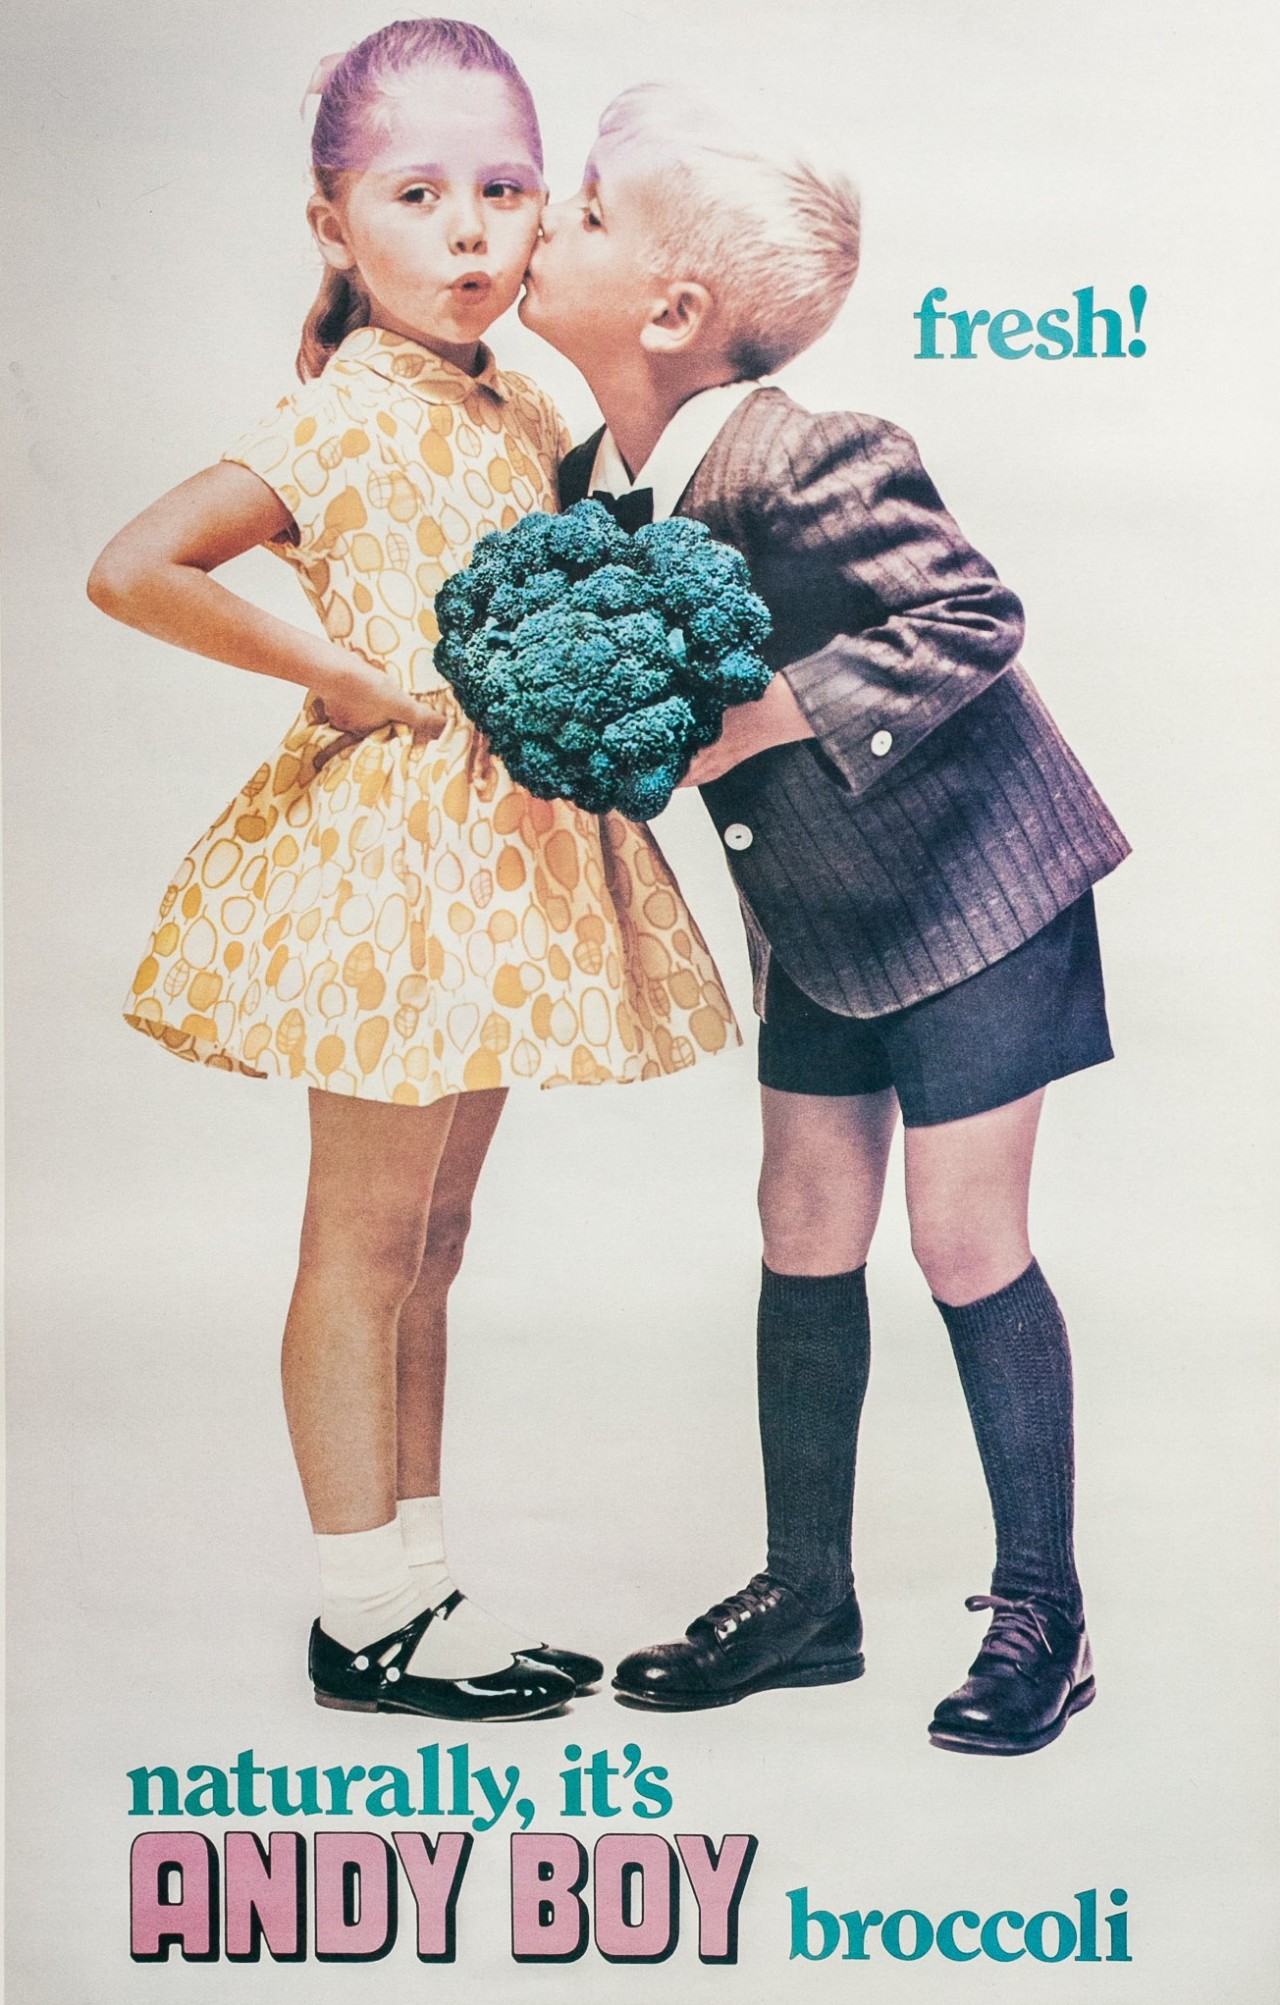 Poster image #1 of 3 Andy Boy Broccoli.[courtesy of Matthew D'Arrigo]